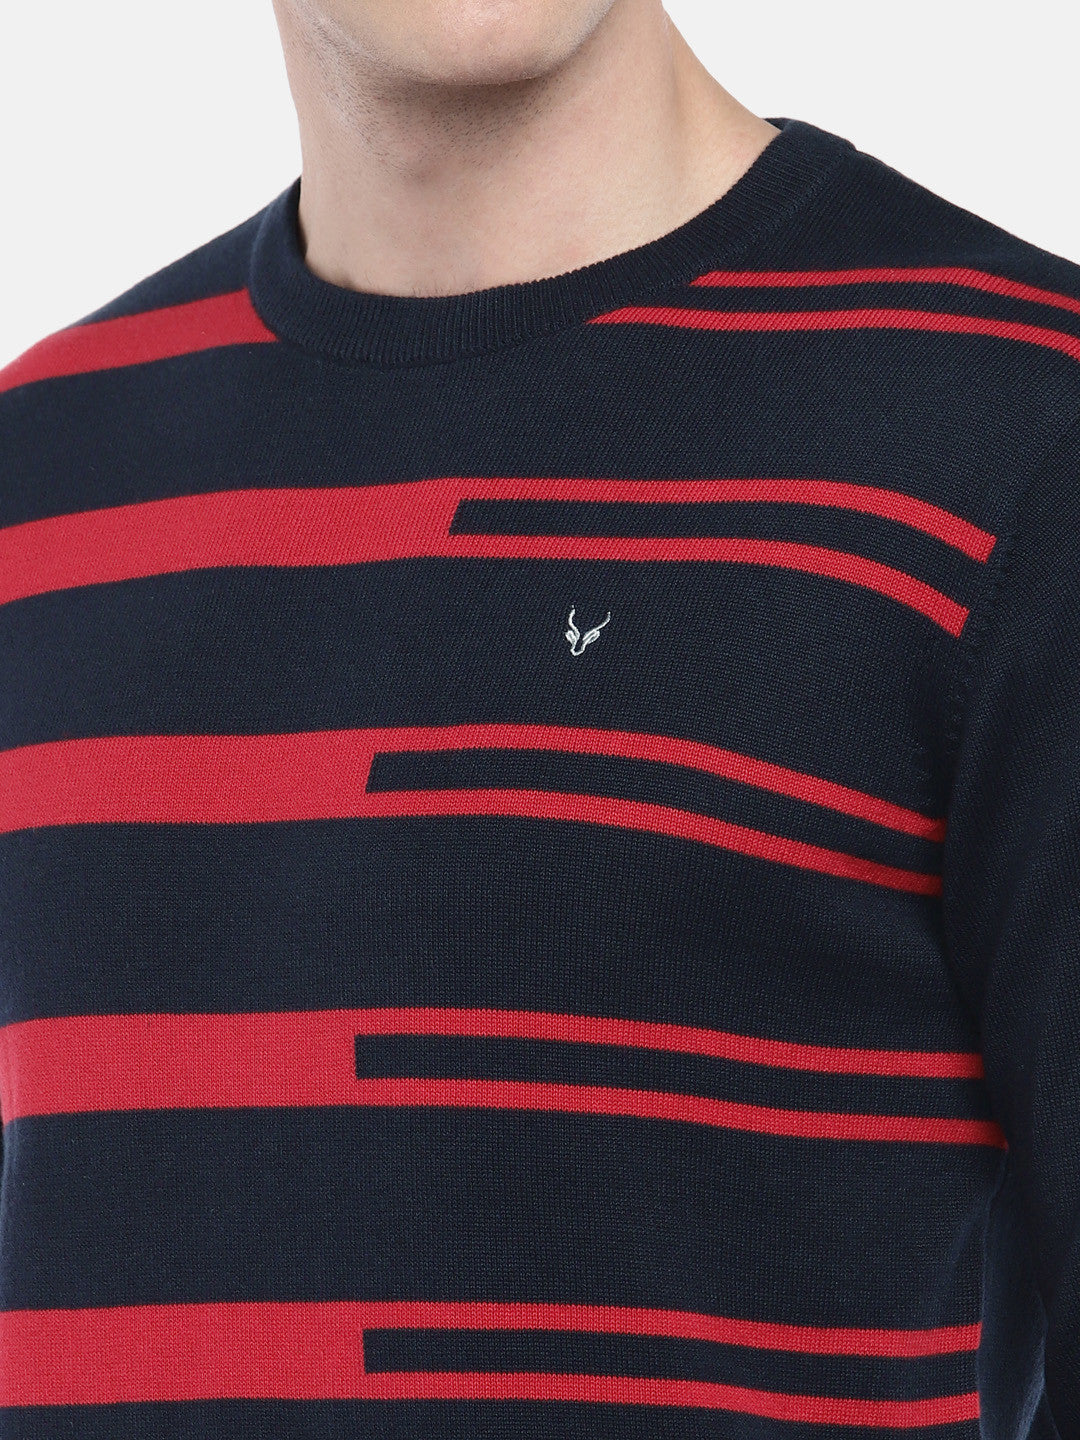 Navy Blue & Red Striped Pullover Sweater-5